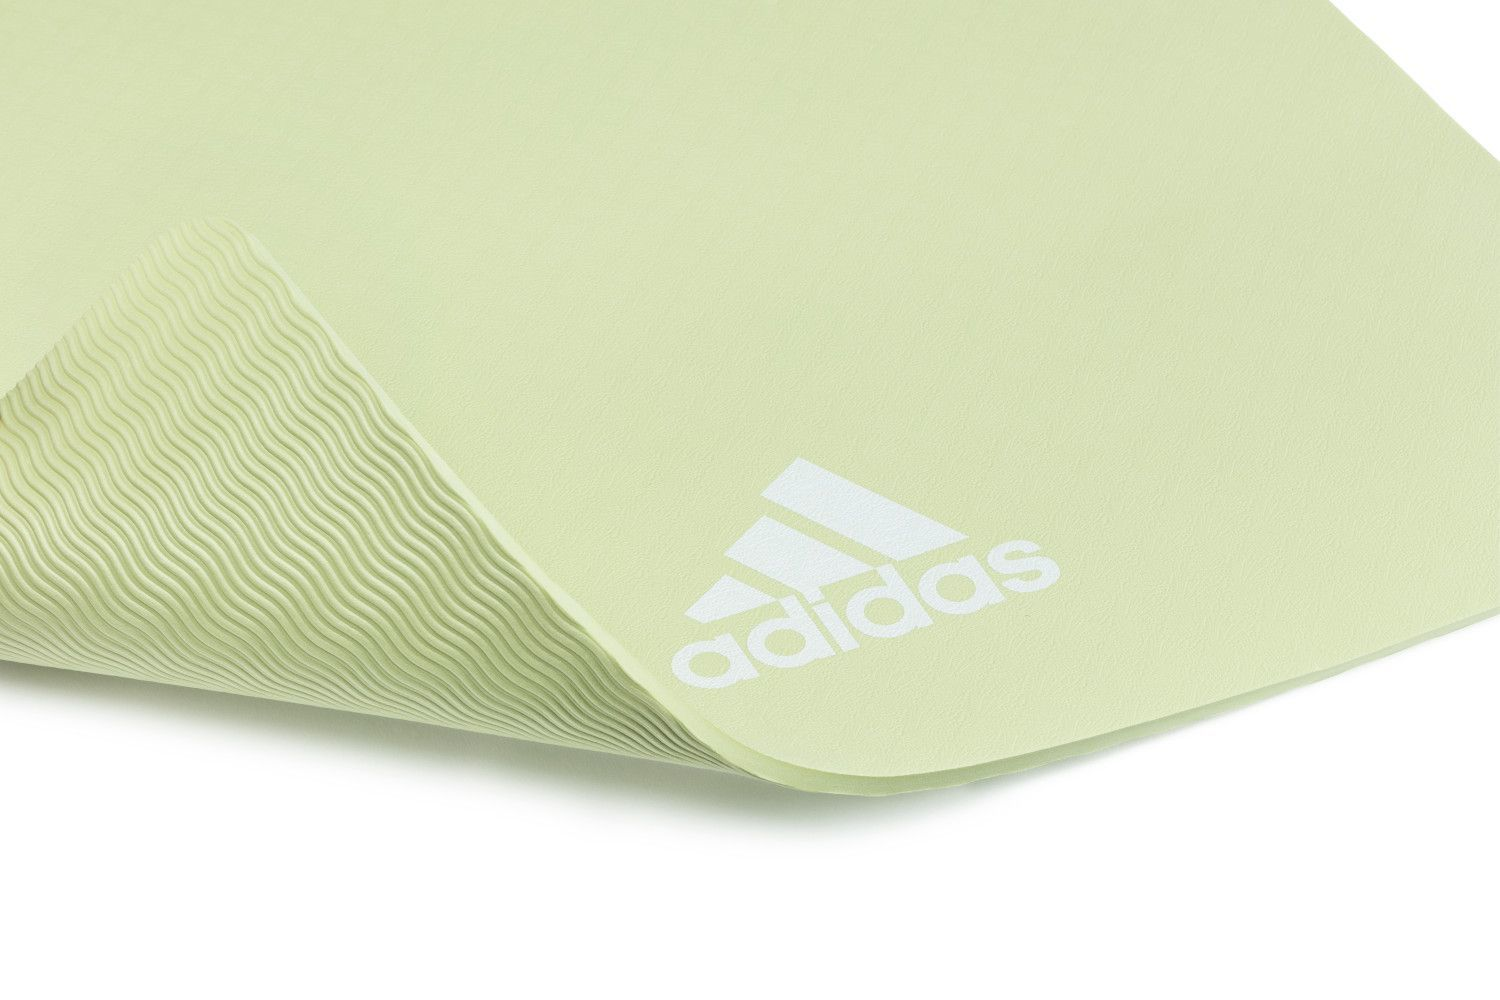 Adidas: Yoga Mat - Aero Green (8mm) image